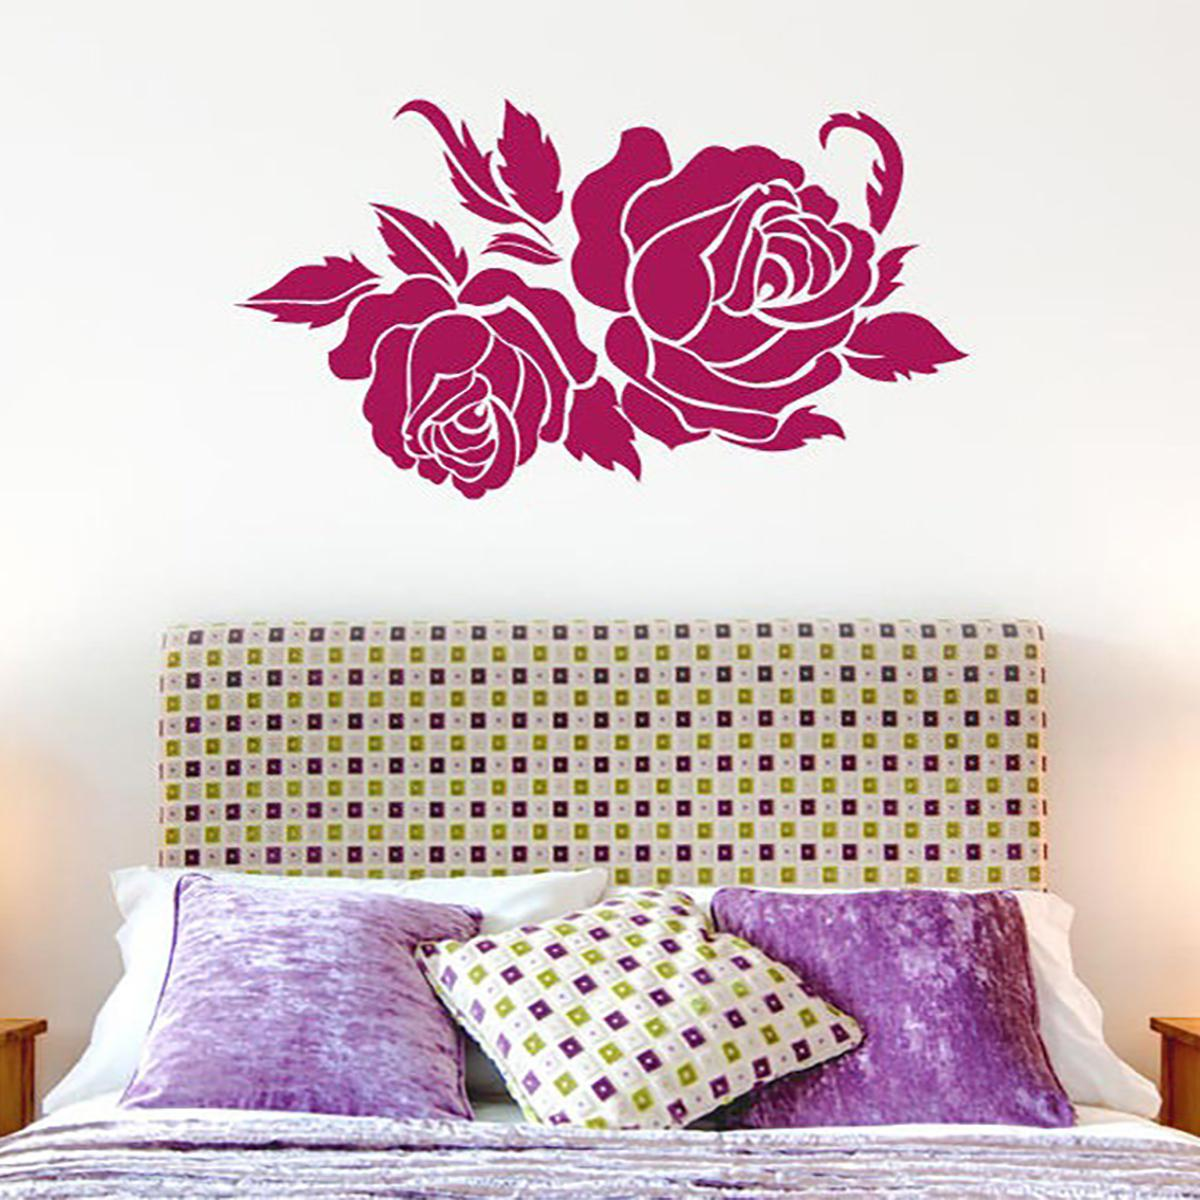 Beautiful Two Roses Pretty Flower Wall Stickers Bedroom Bedside Vinyl Art Decals Home Decor Mural Wall Decals For Girls Room Wall Decals For Home From